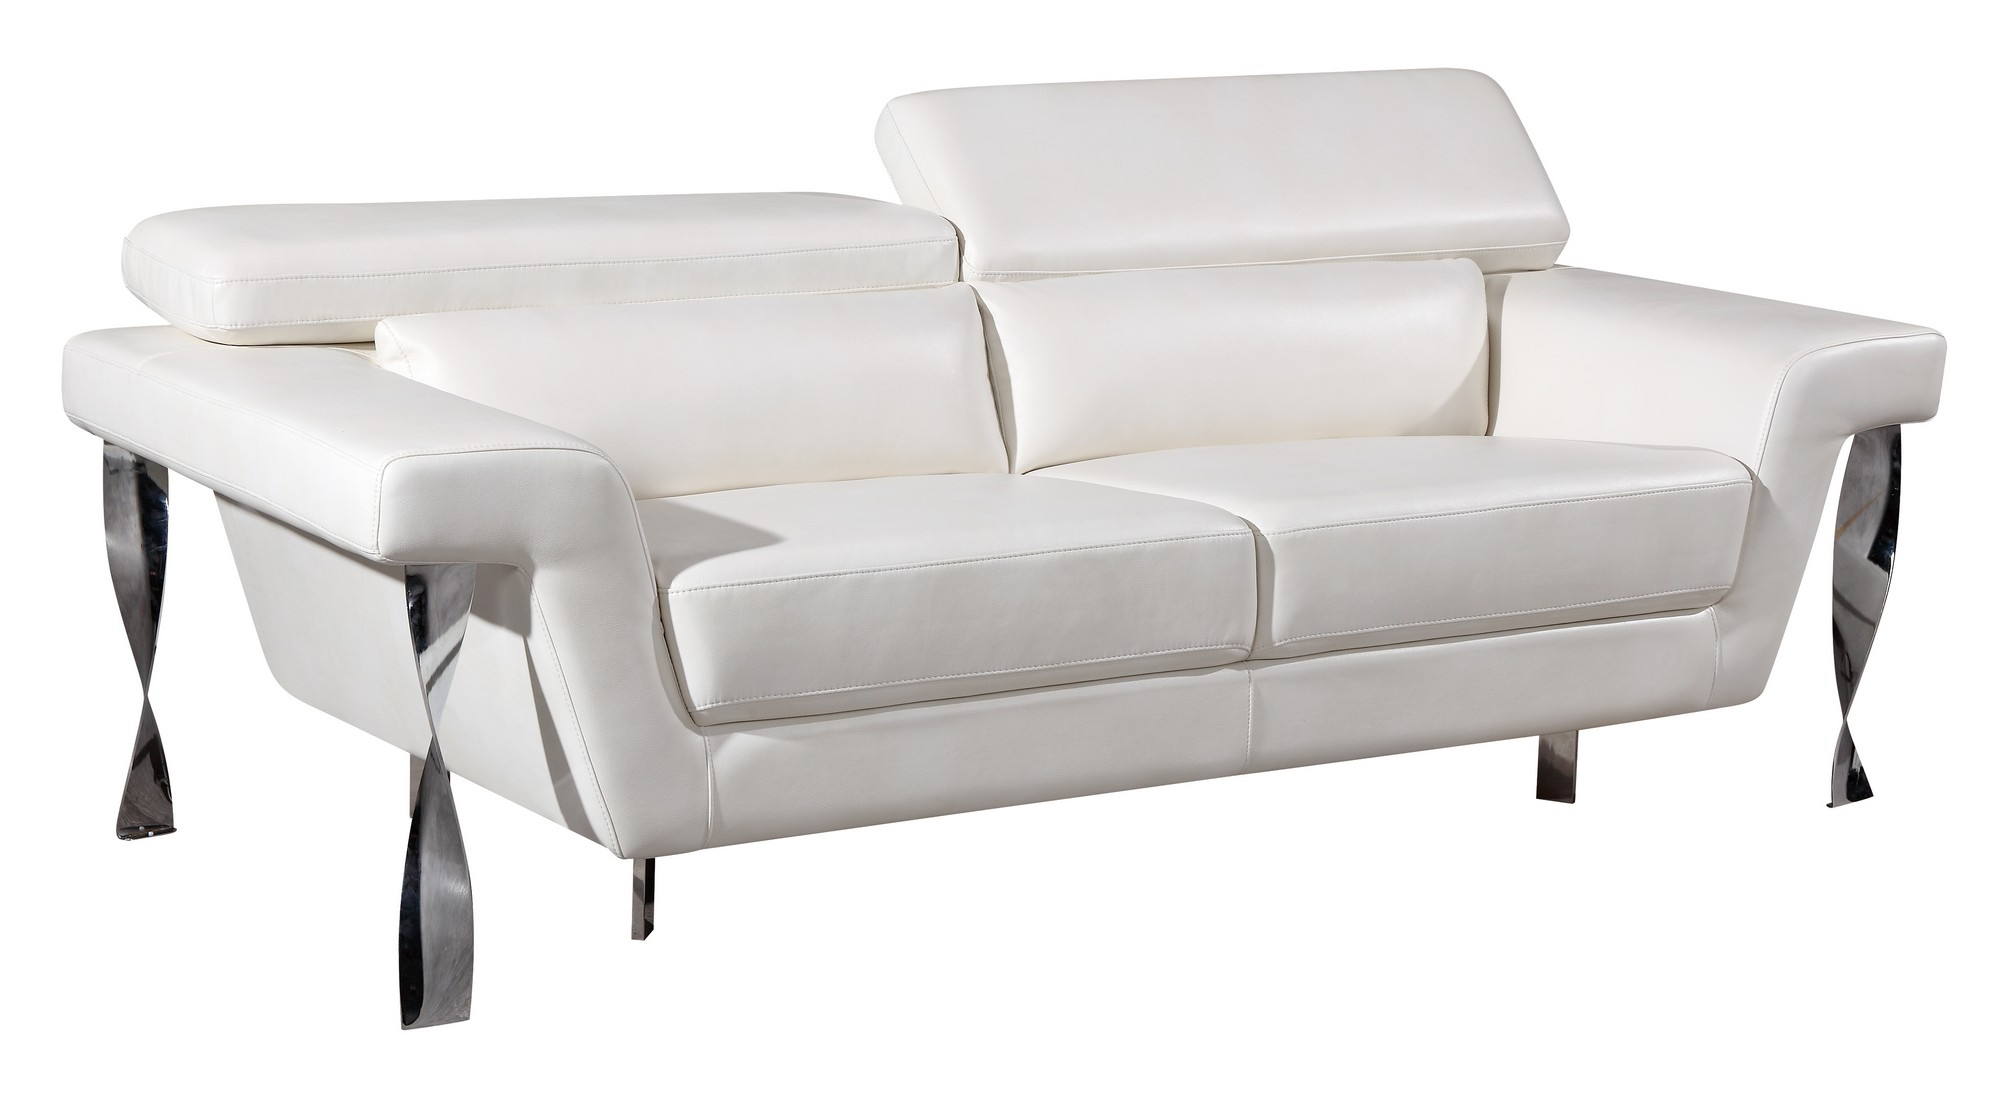 U8180 white leather gel sofa by global furniture for White leather sofa and chair